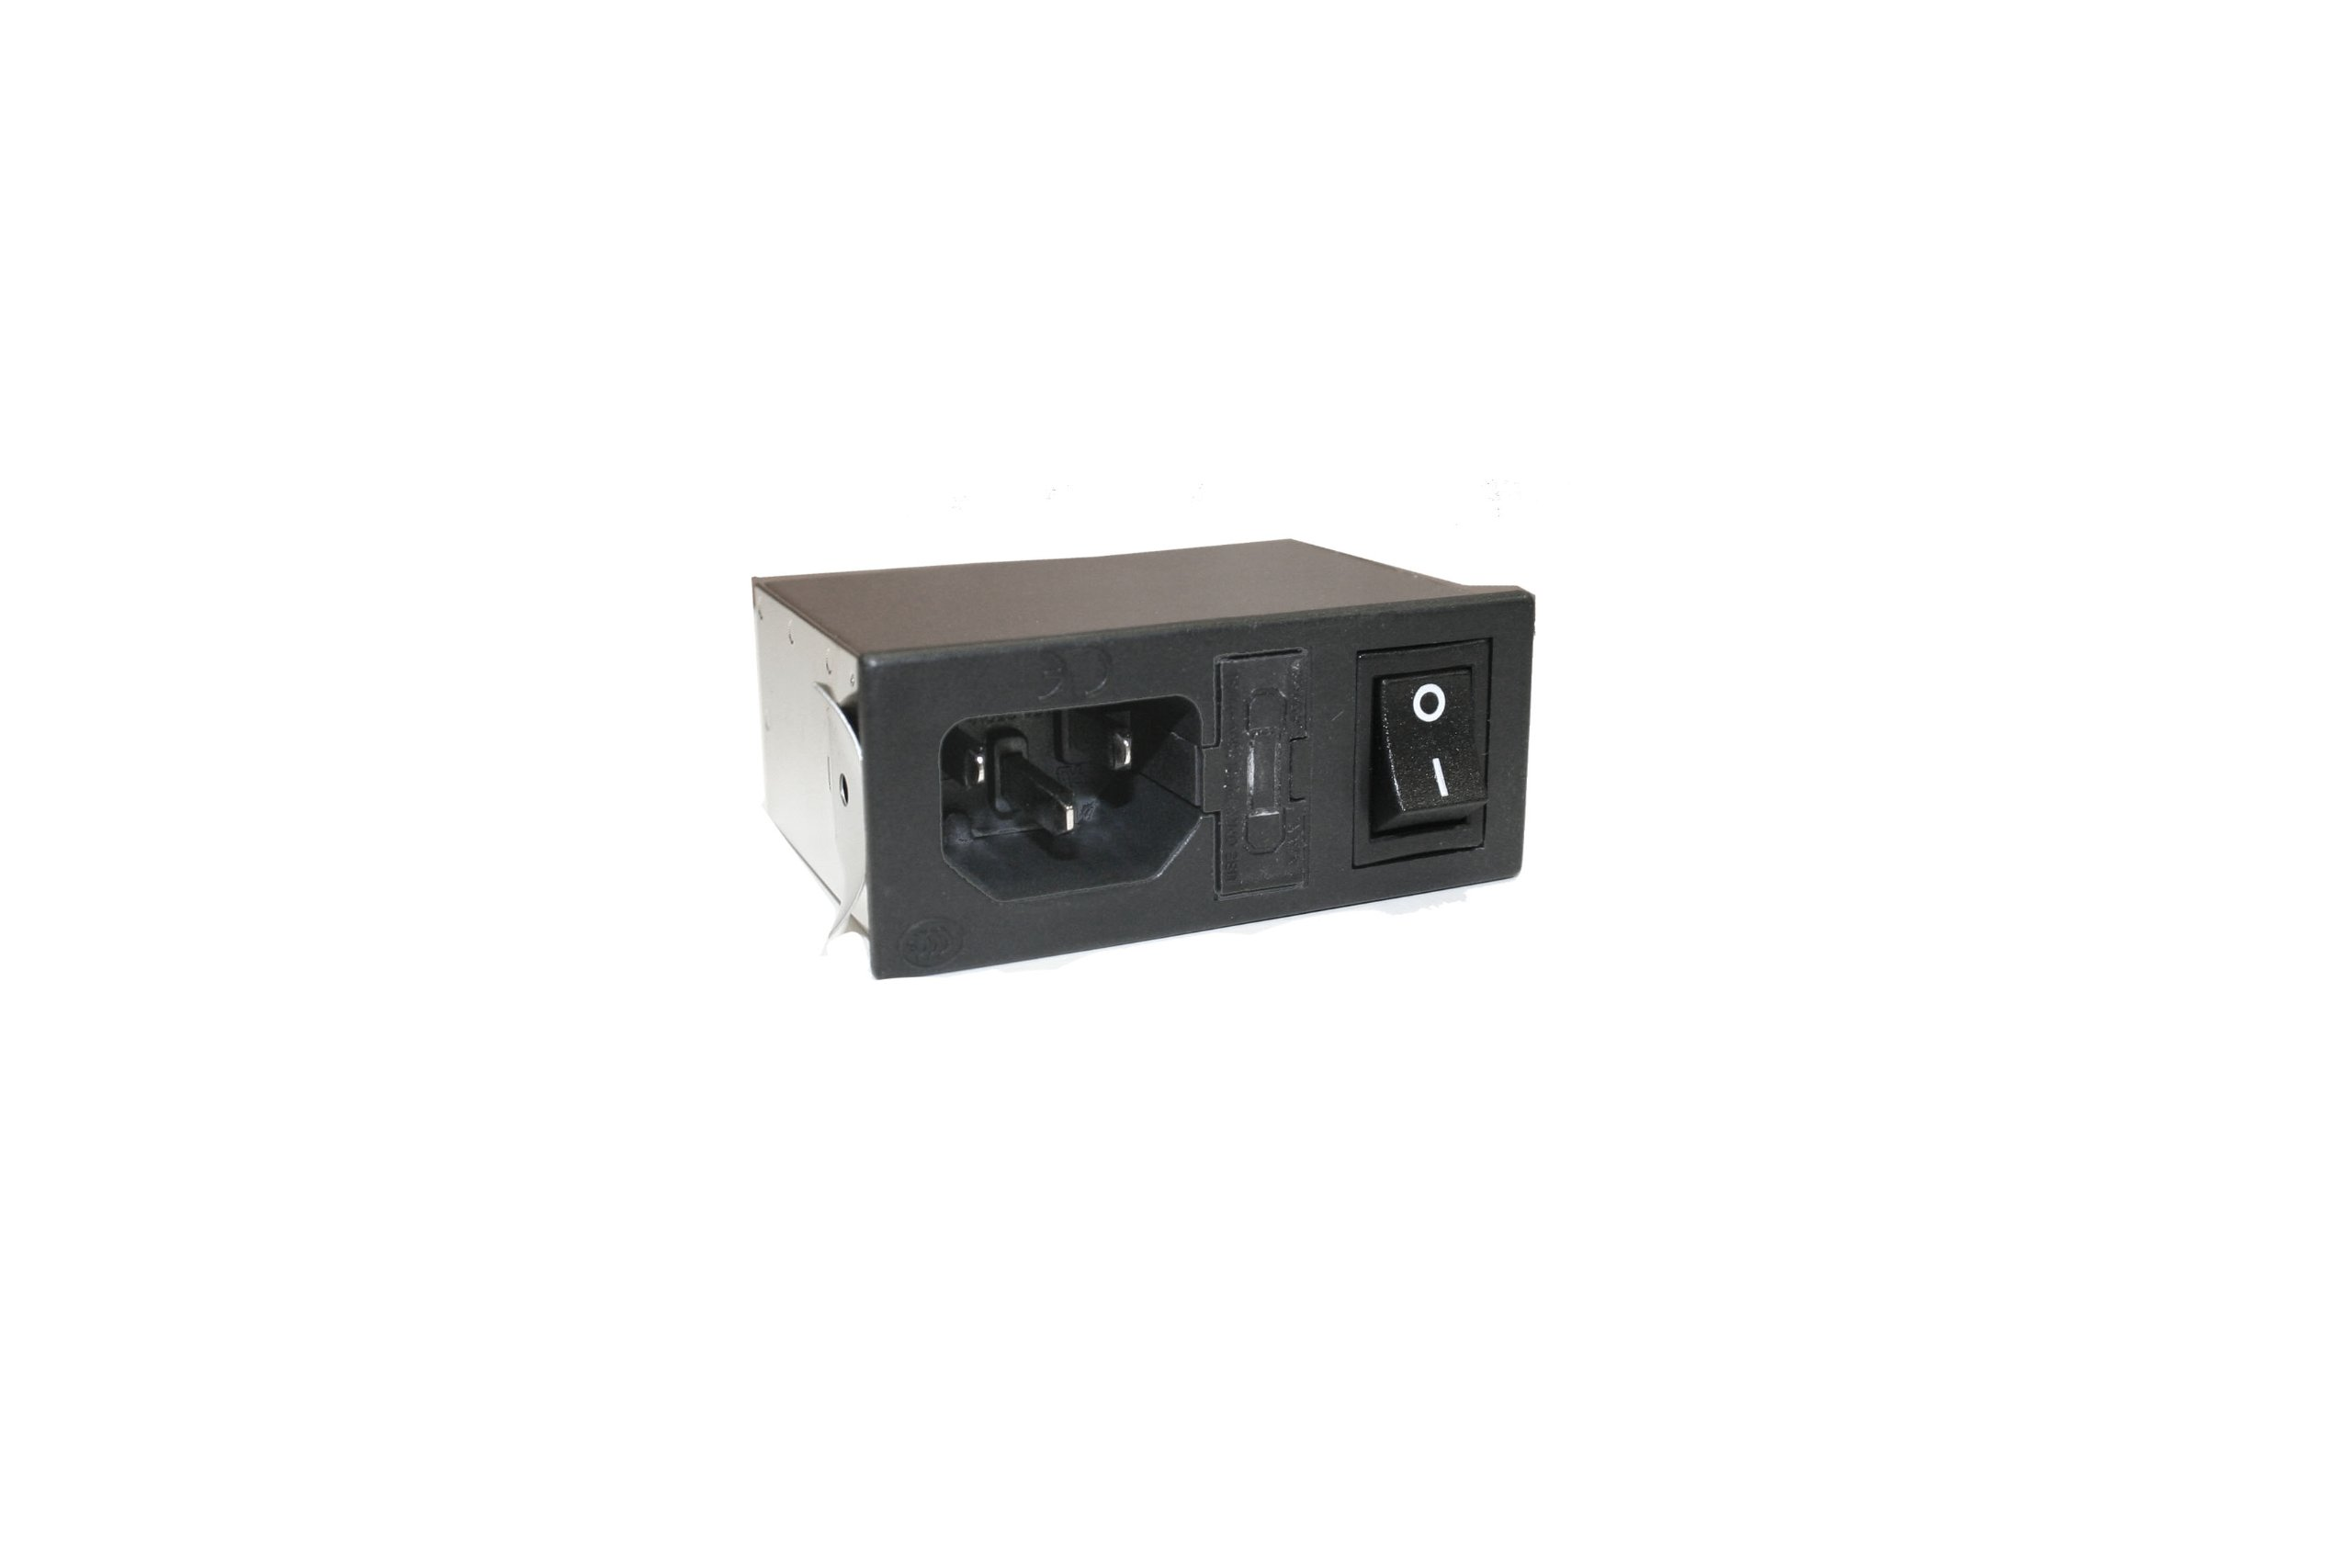 Interpower 83510031 Four Function Power Entry Module, C14 Inlet, Switch, Single Fused, Filter, 1-2mm Panel Thickness, 4 Amp/6 Amp Current Rating, 125/250VAC Voltage Rating